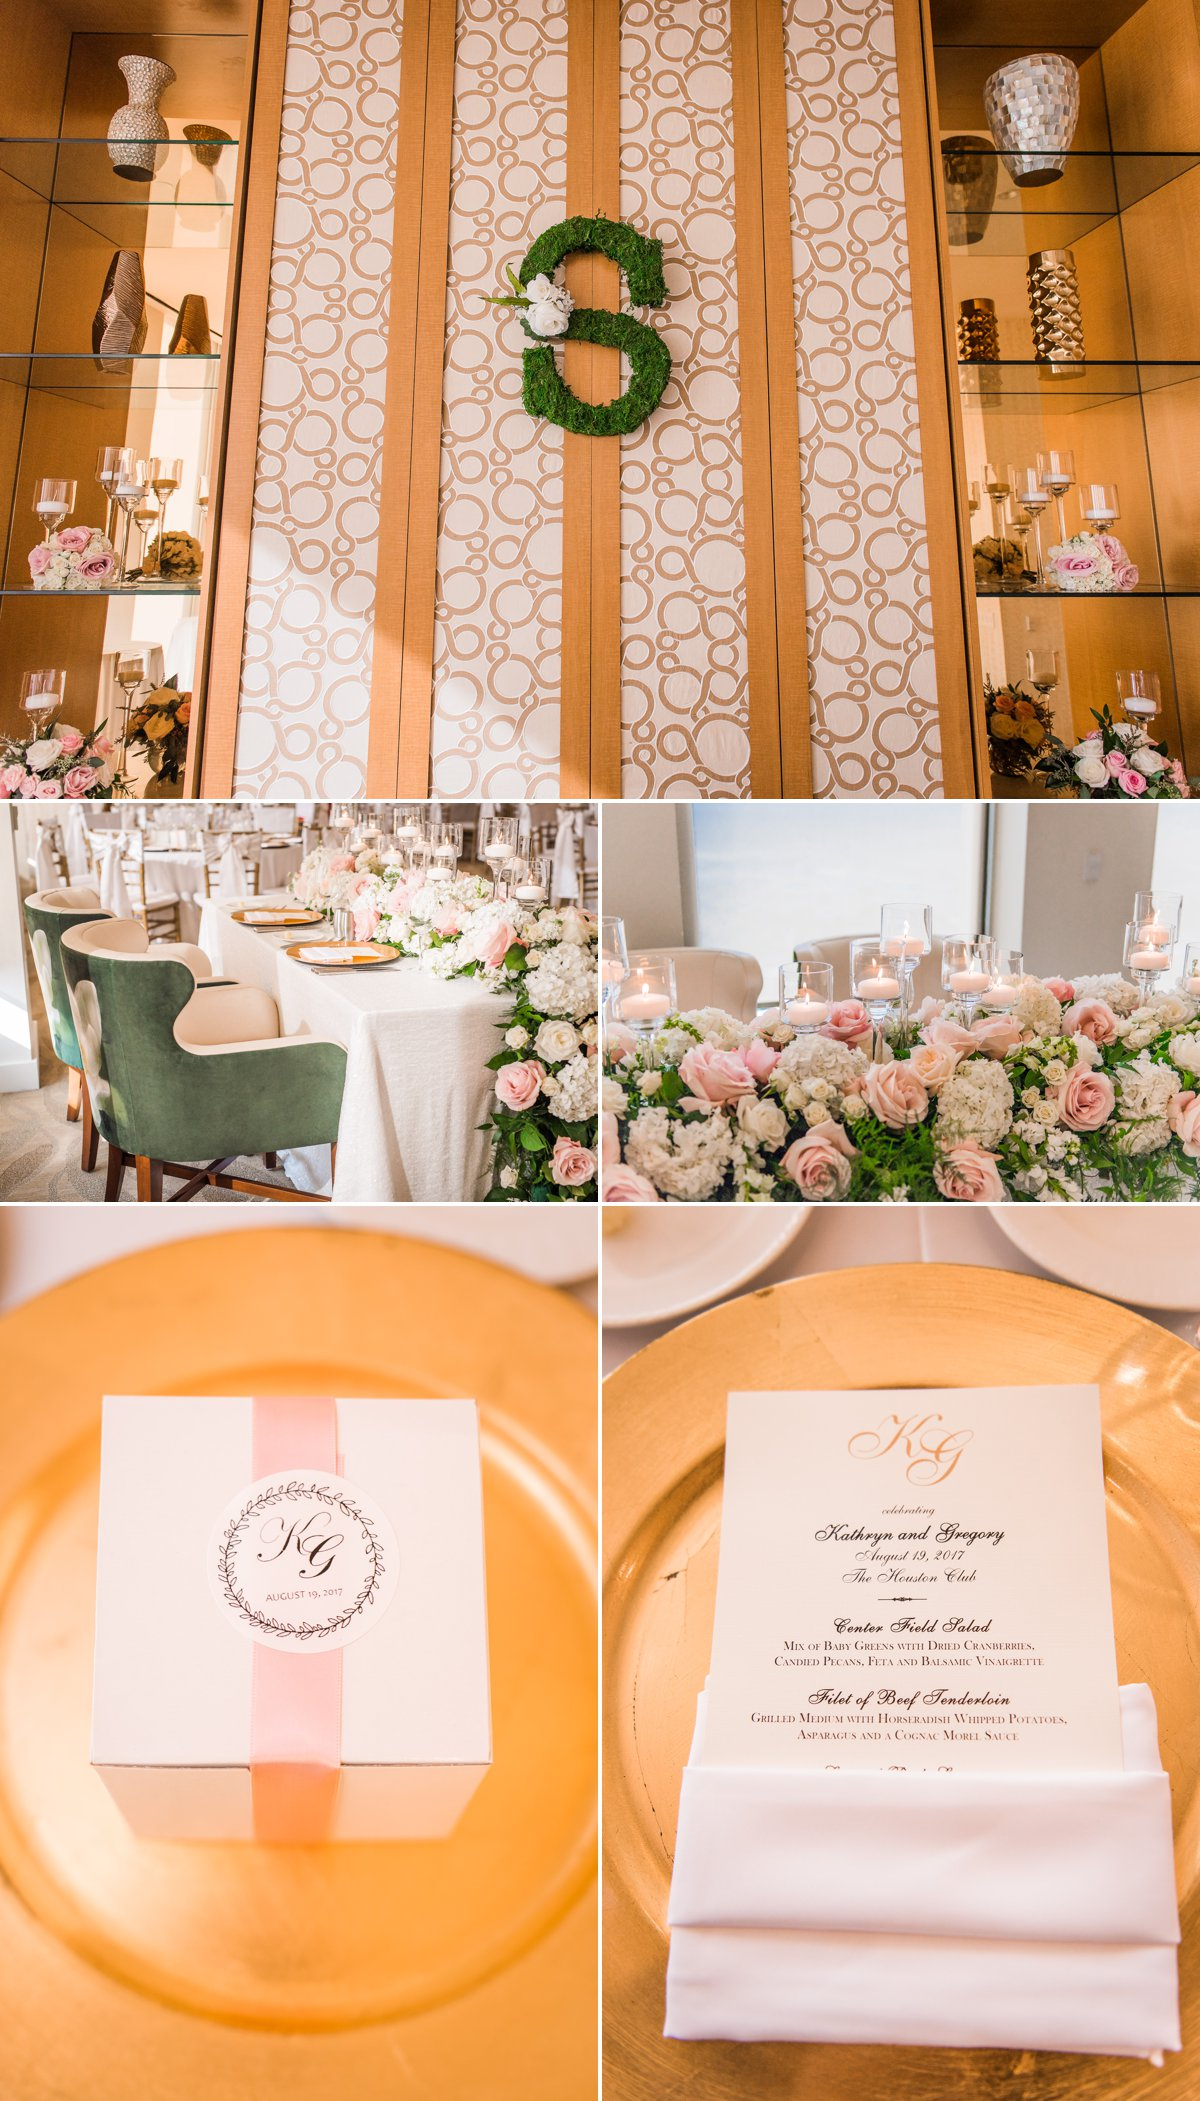 Houston Club Wedding Decorations and Details